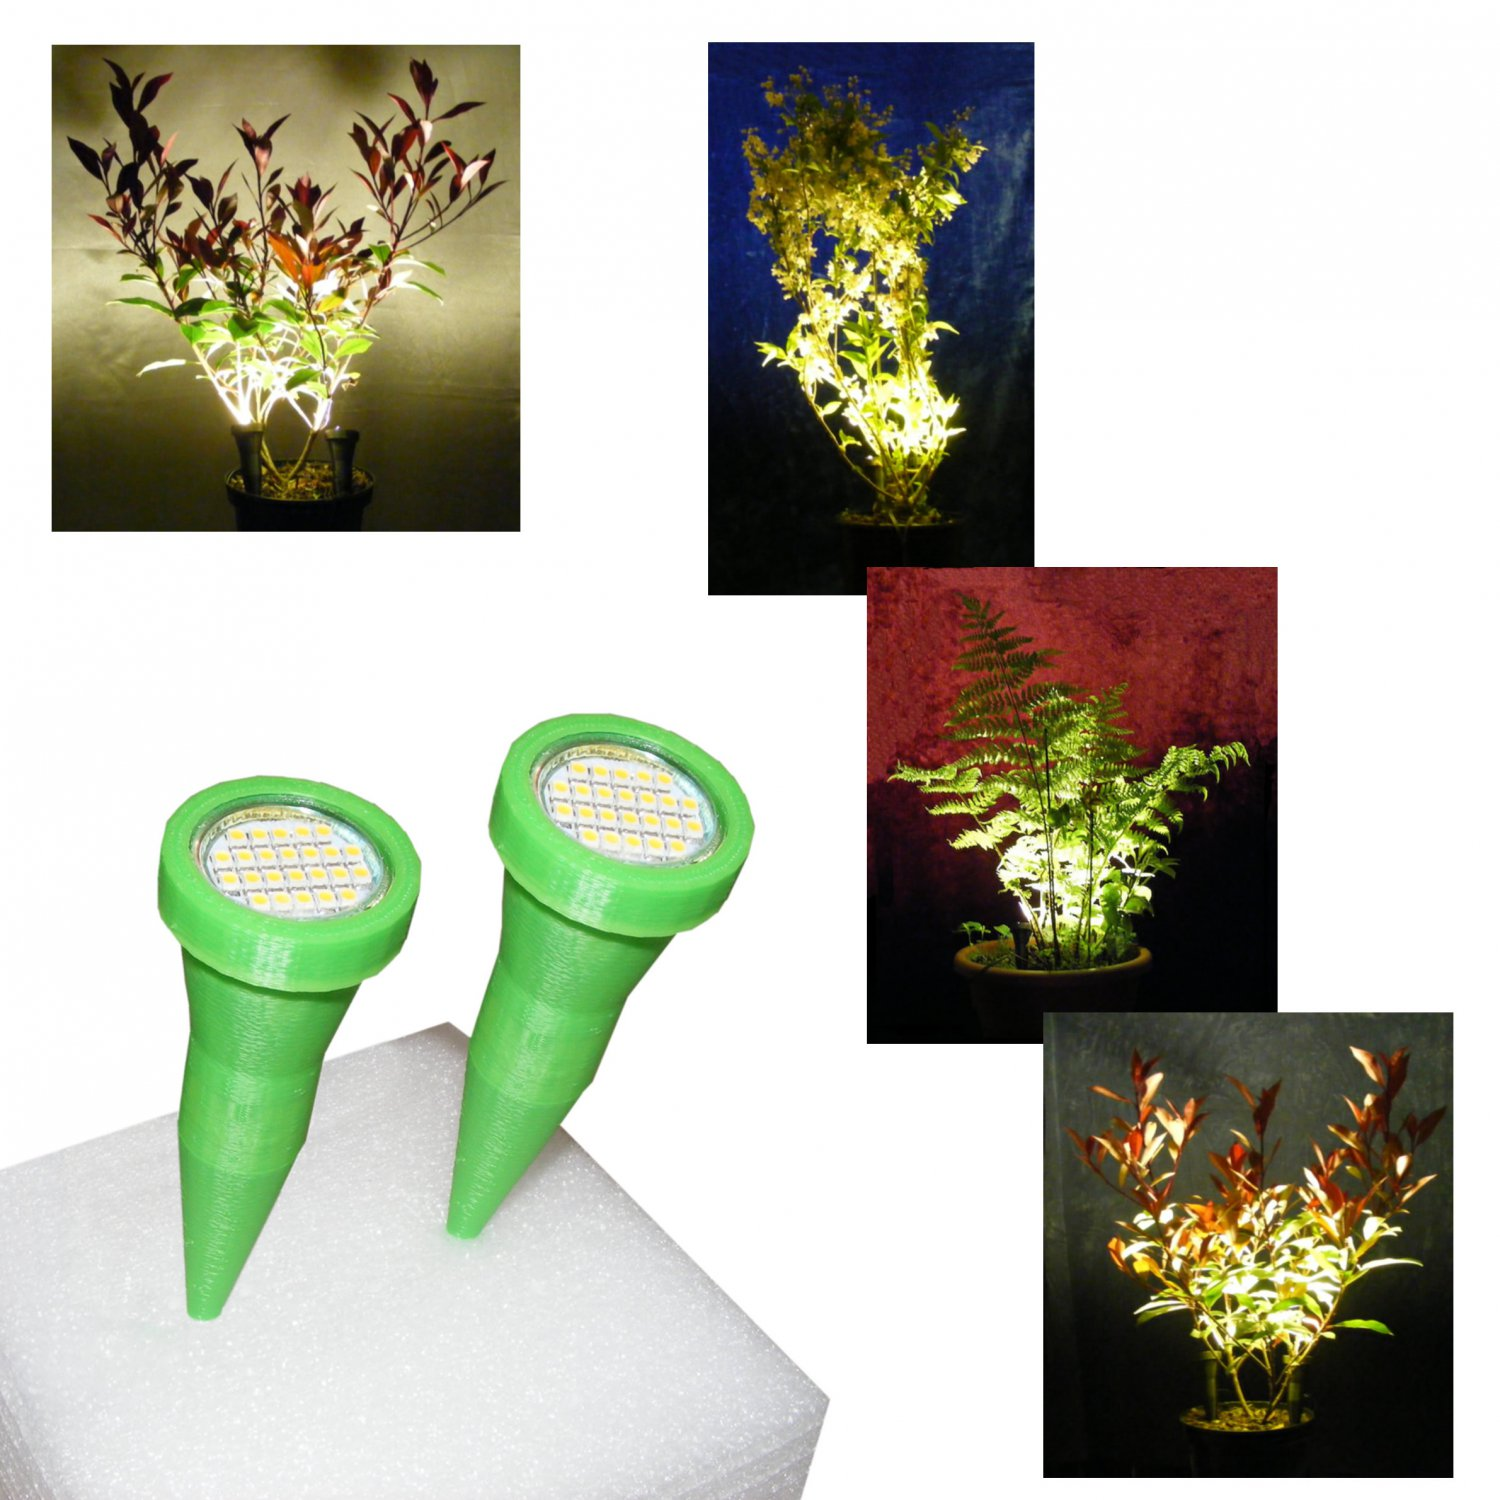 Plant Pot Display Lights / Uplighters in Green / Pair of Plant Pot Spike Lights with Mains Adapter